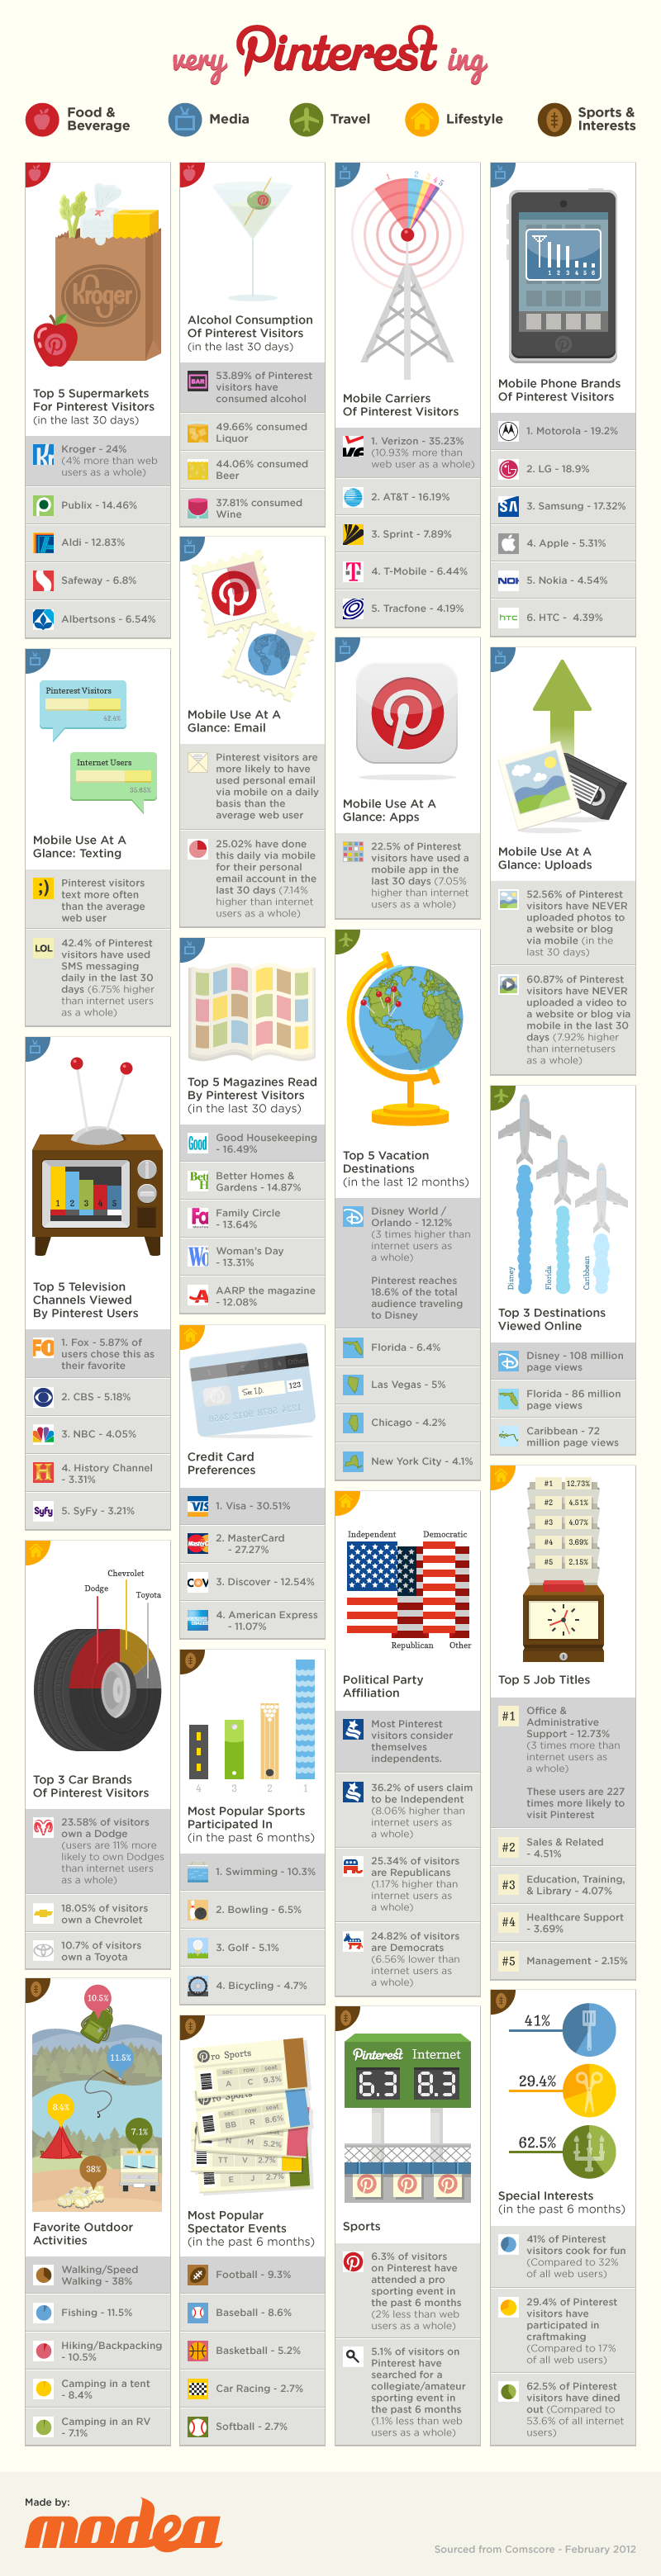 Very Pinterest Ing #infographic #socialmedia #in